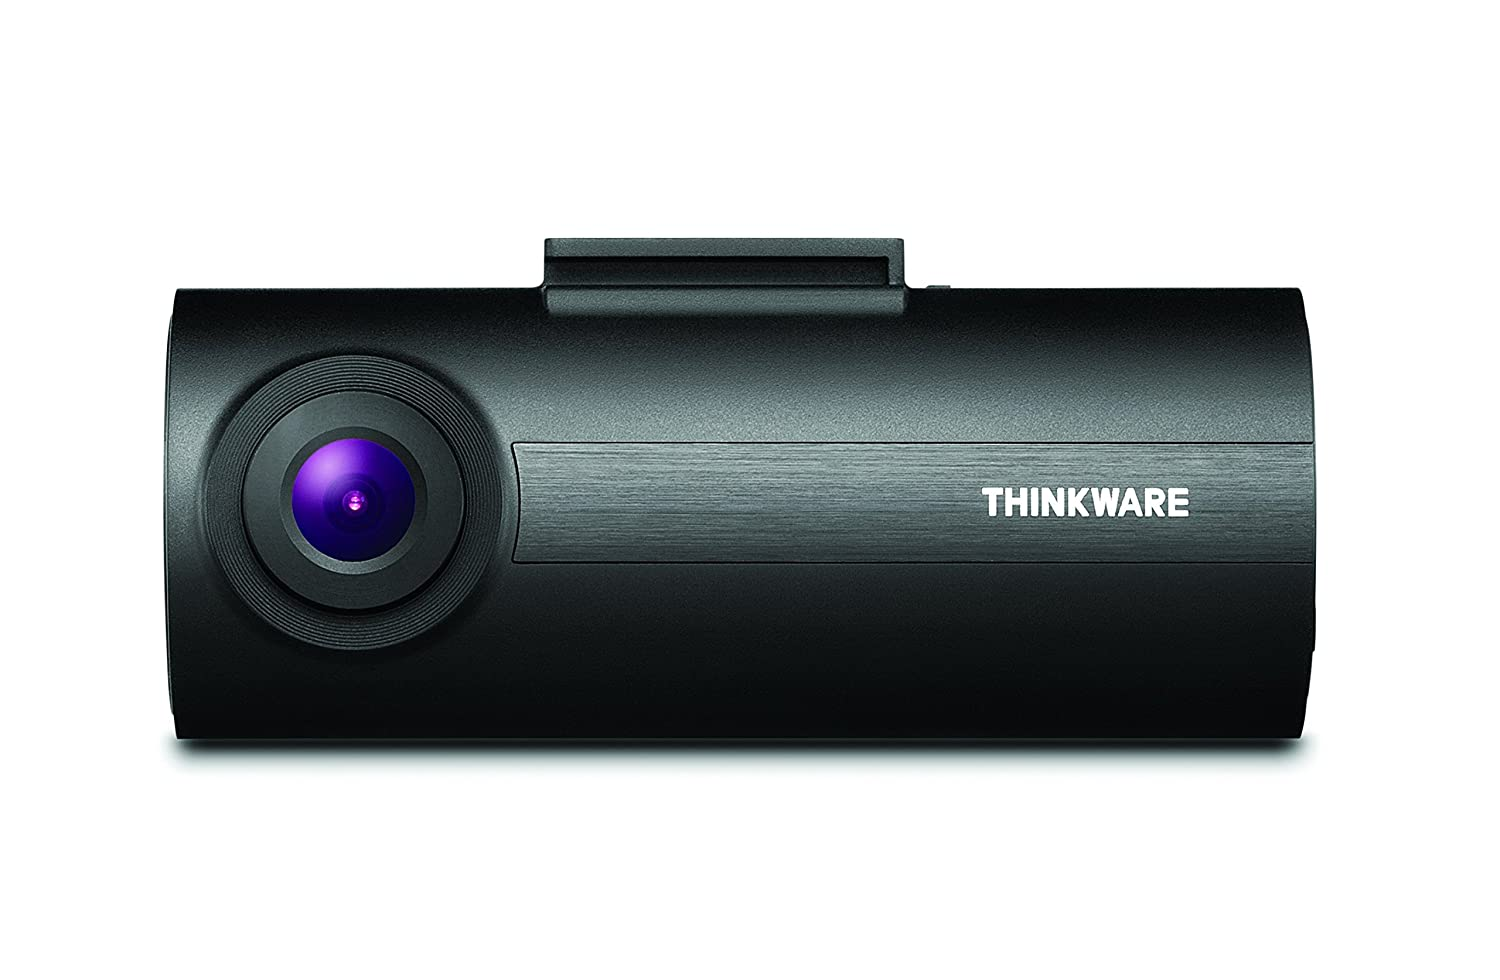 THINKWARE TW-F50HG Dash Cam Bundle with Hardwiring Cable & GPS